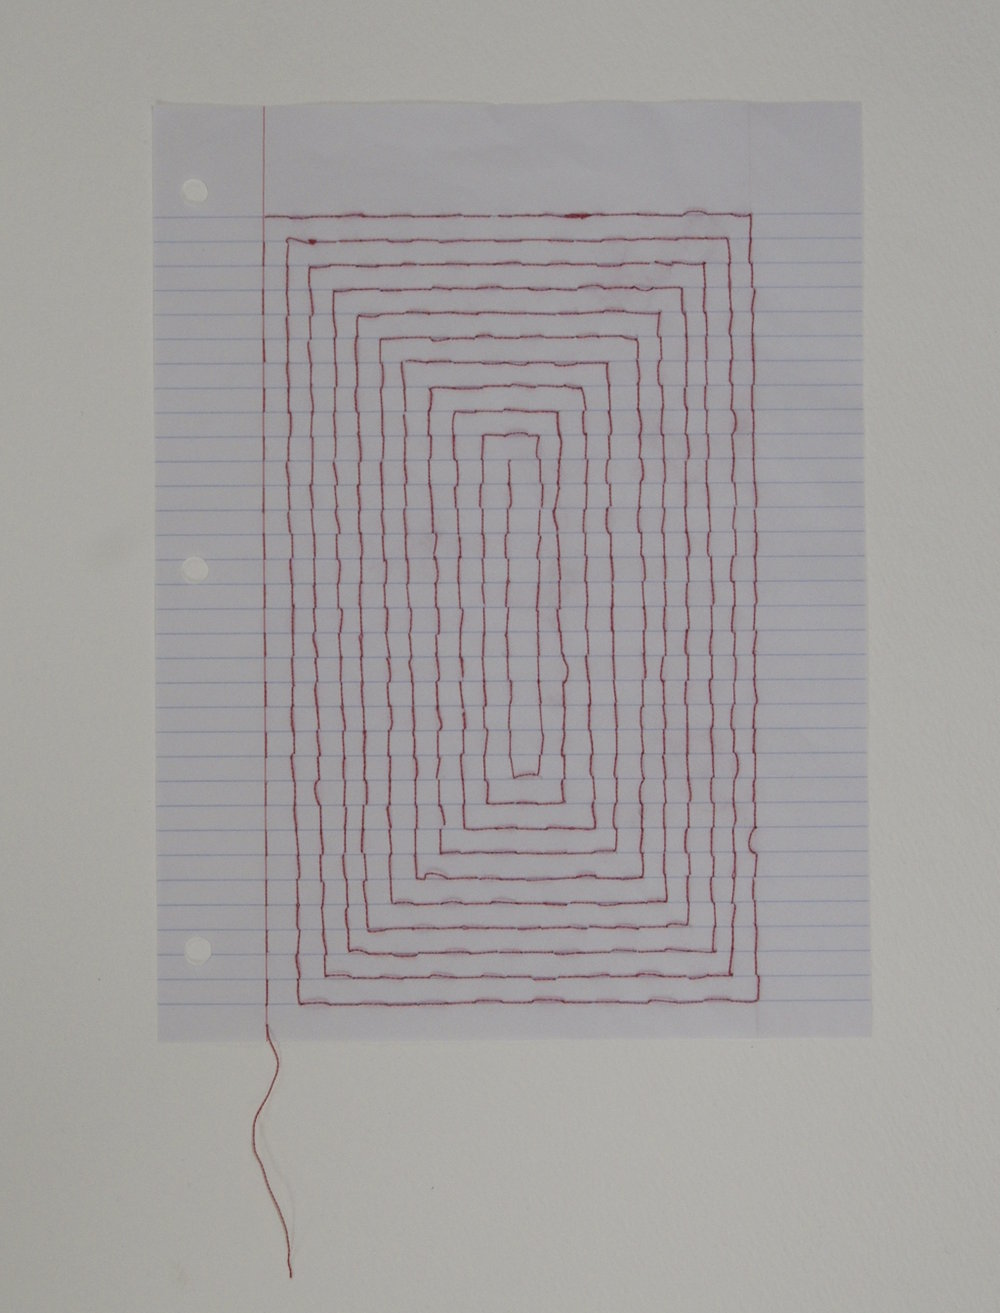 Carpet Page: Labyrinth , 2014, embroidery thread on loose leaf